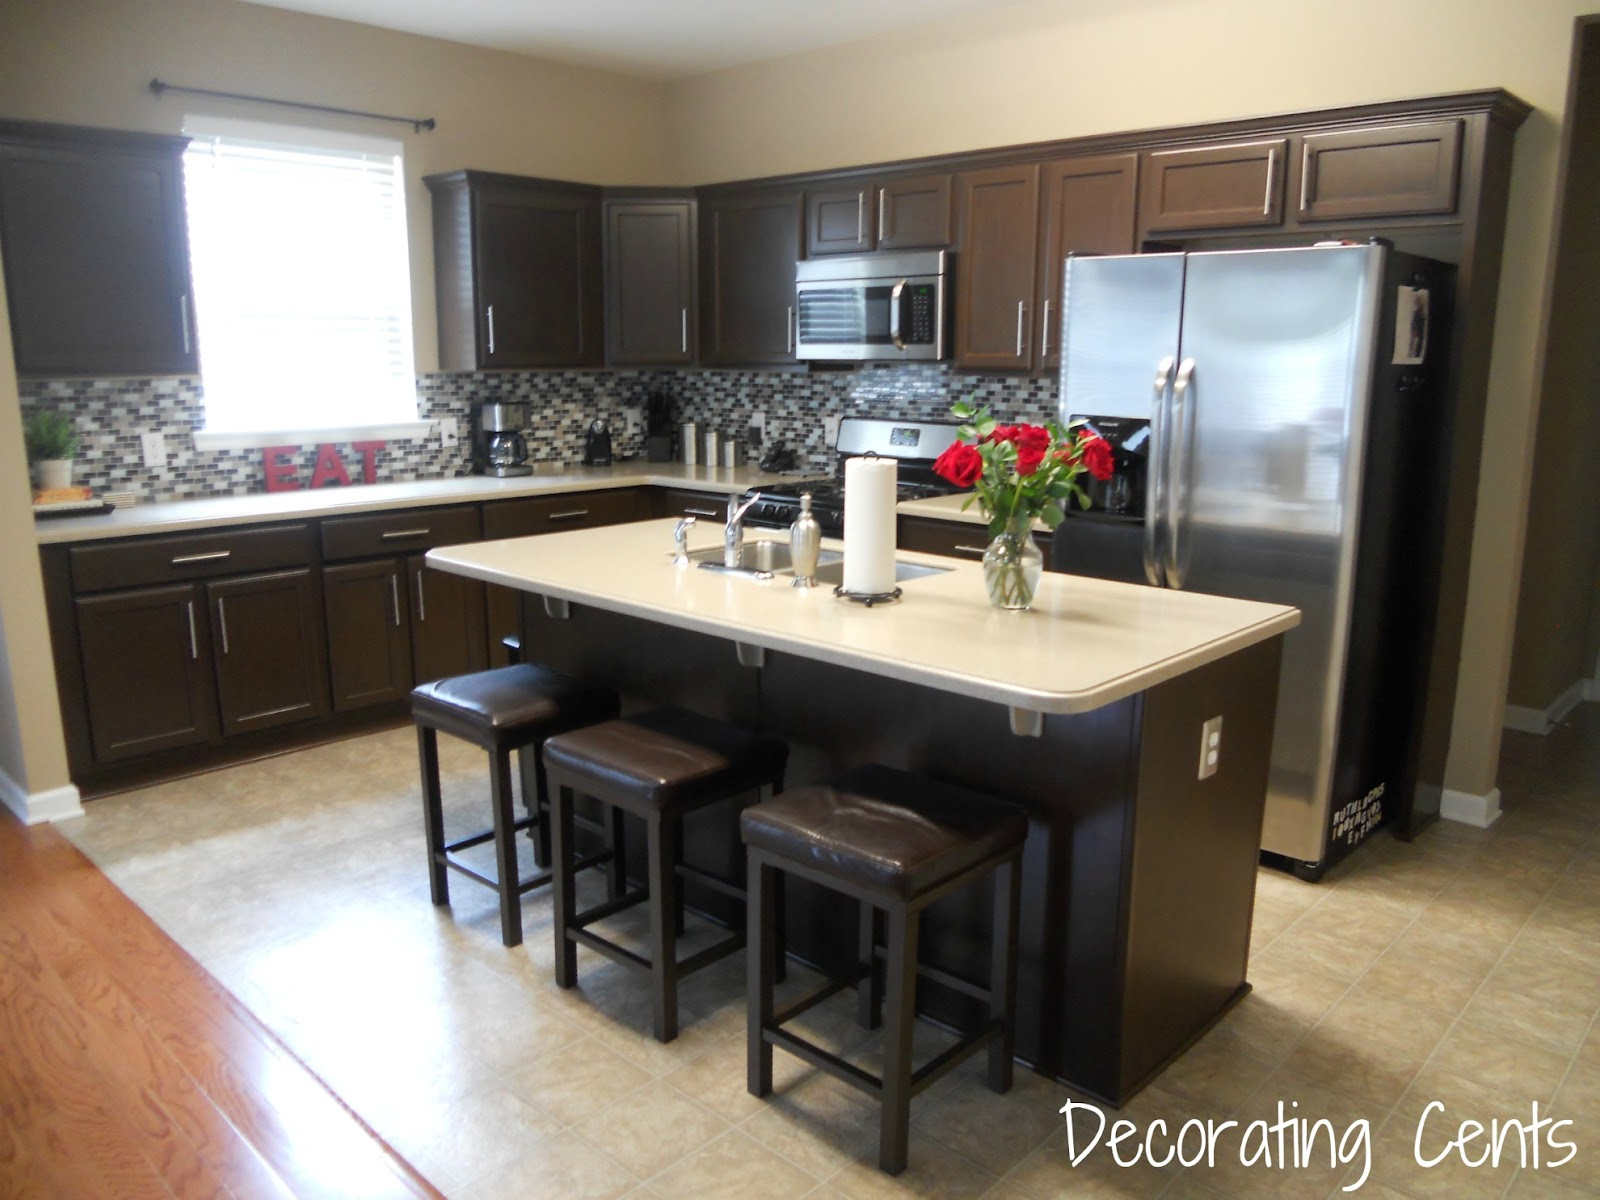 Decorating cents kitchen cabinets revealed - Kitchen pictures ideas ...